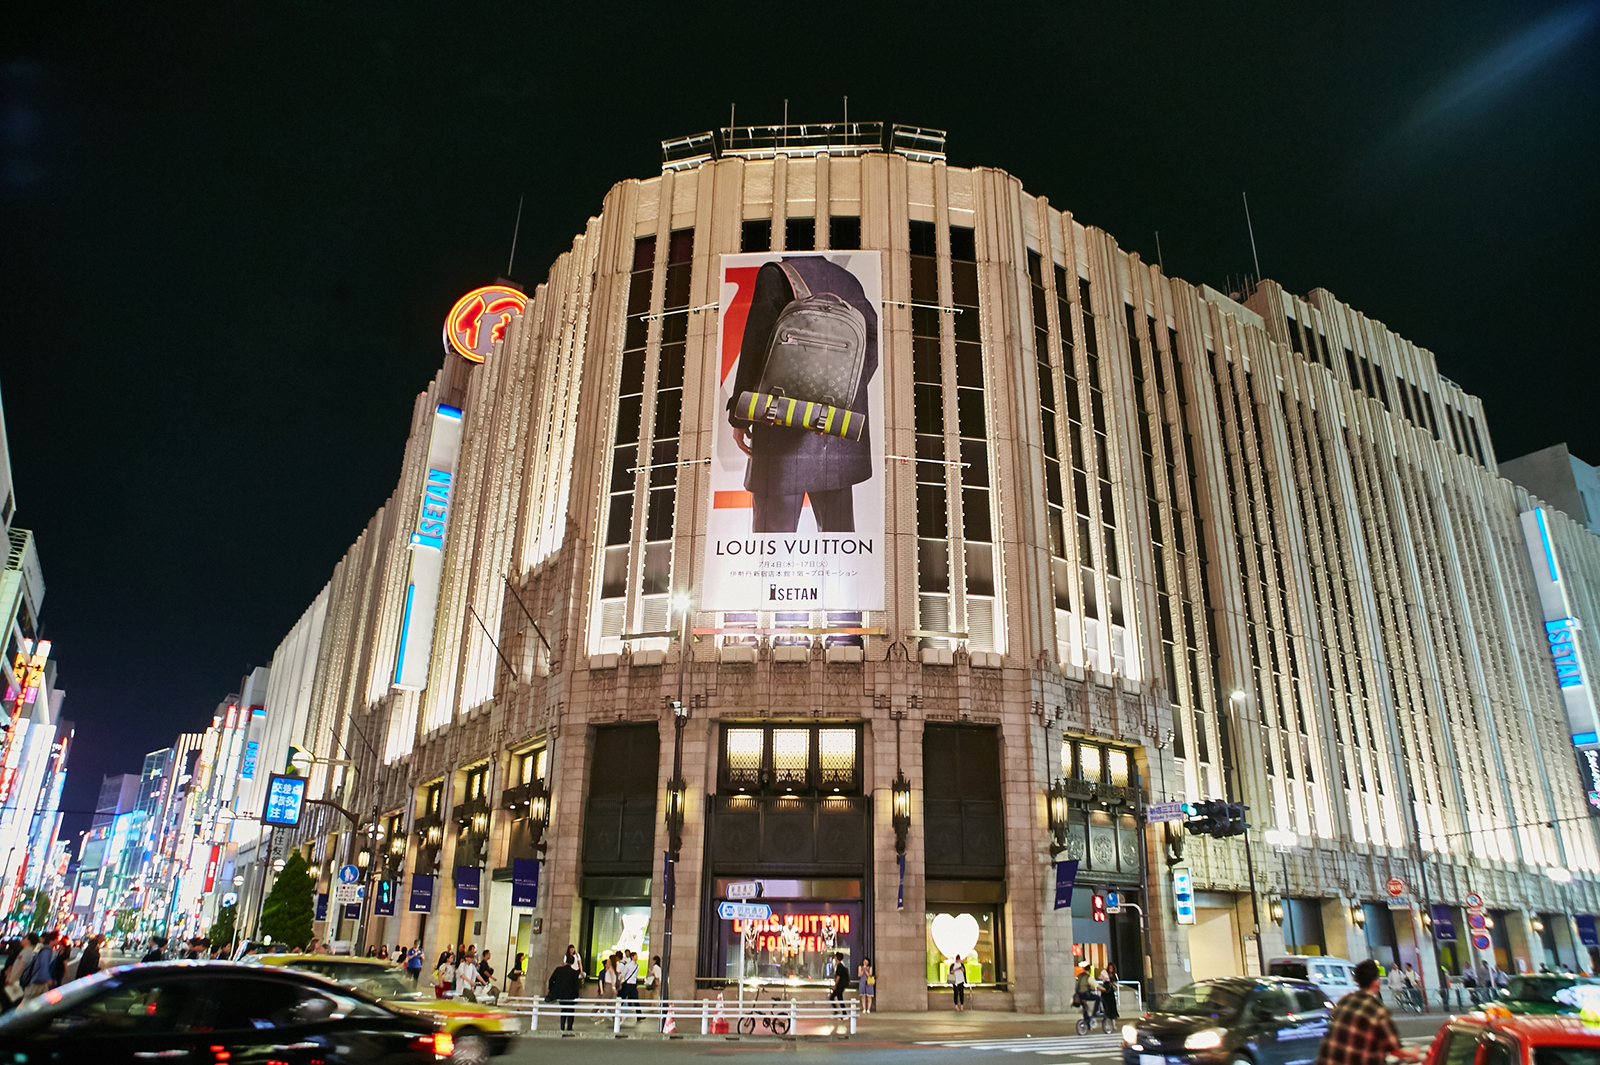 伊勢丹新宿(C)LOUIS VUITTON/WATARU FUKAYA